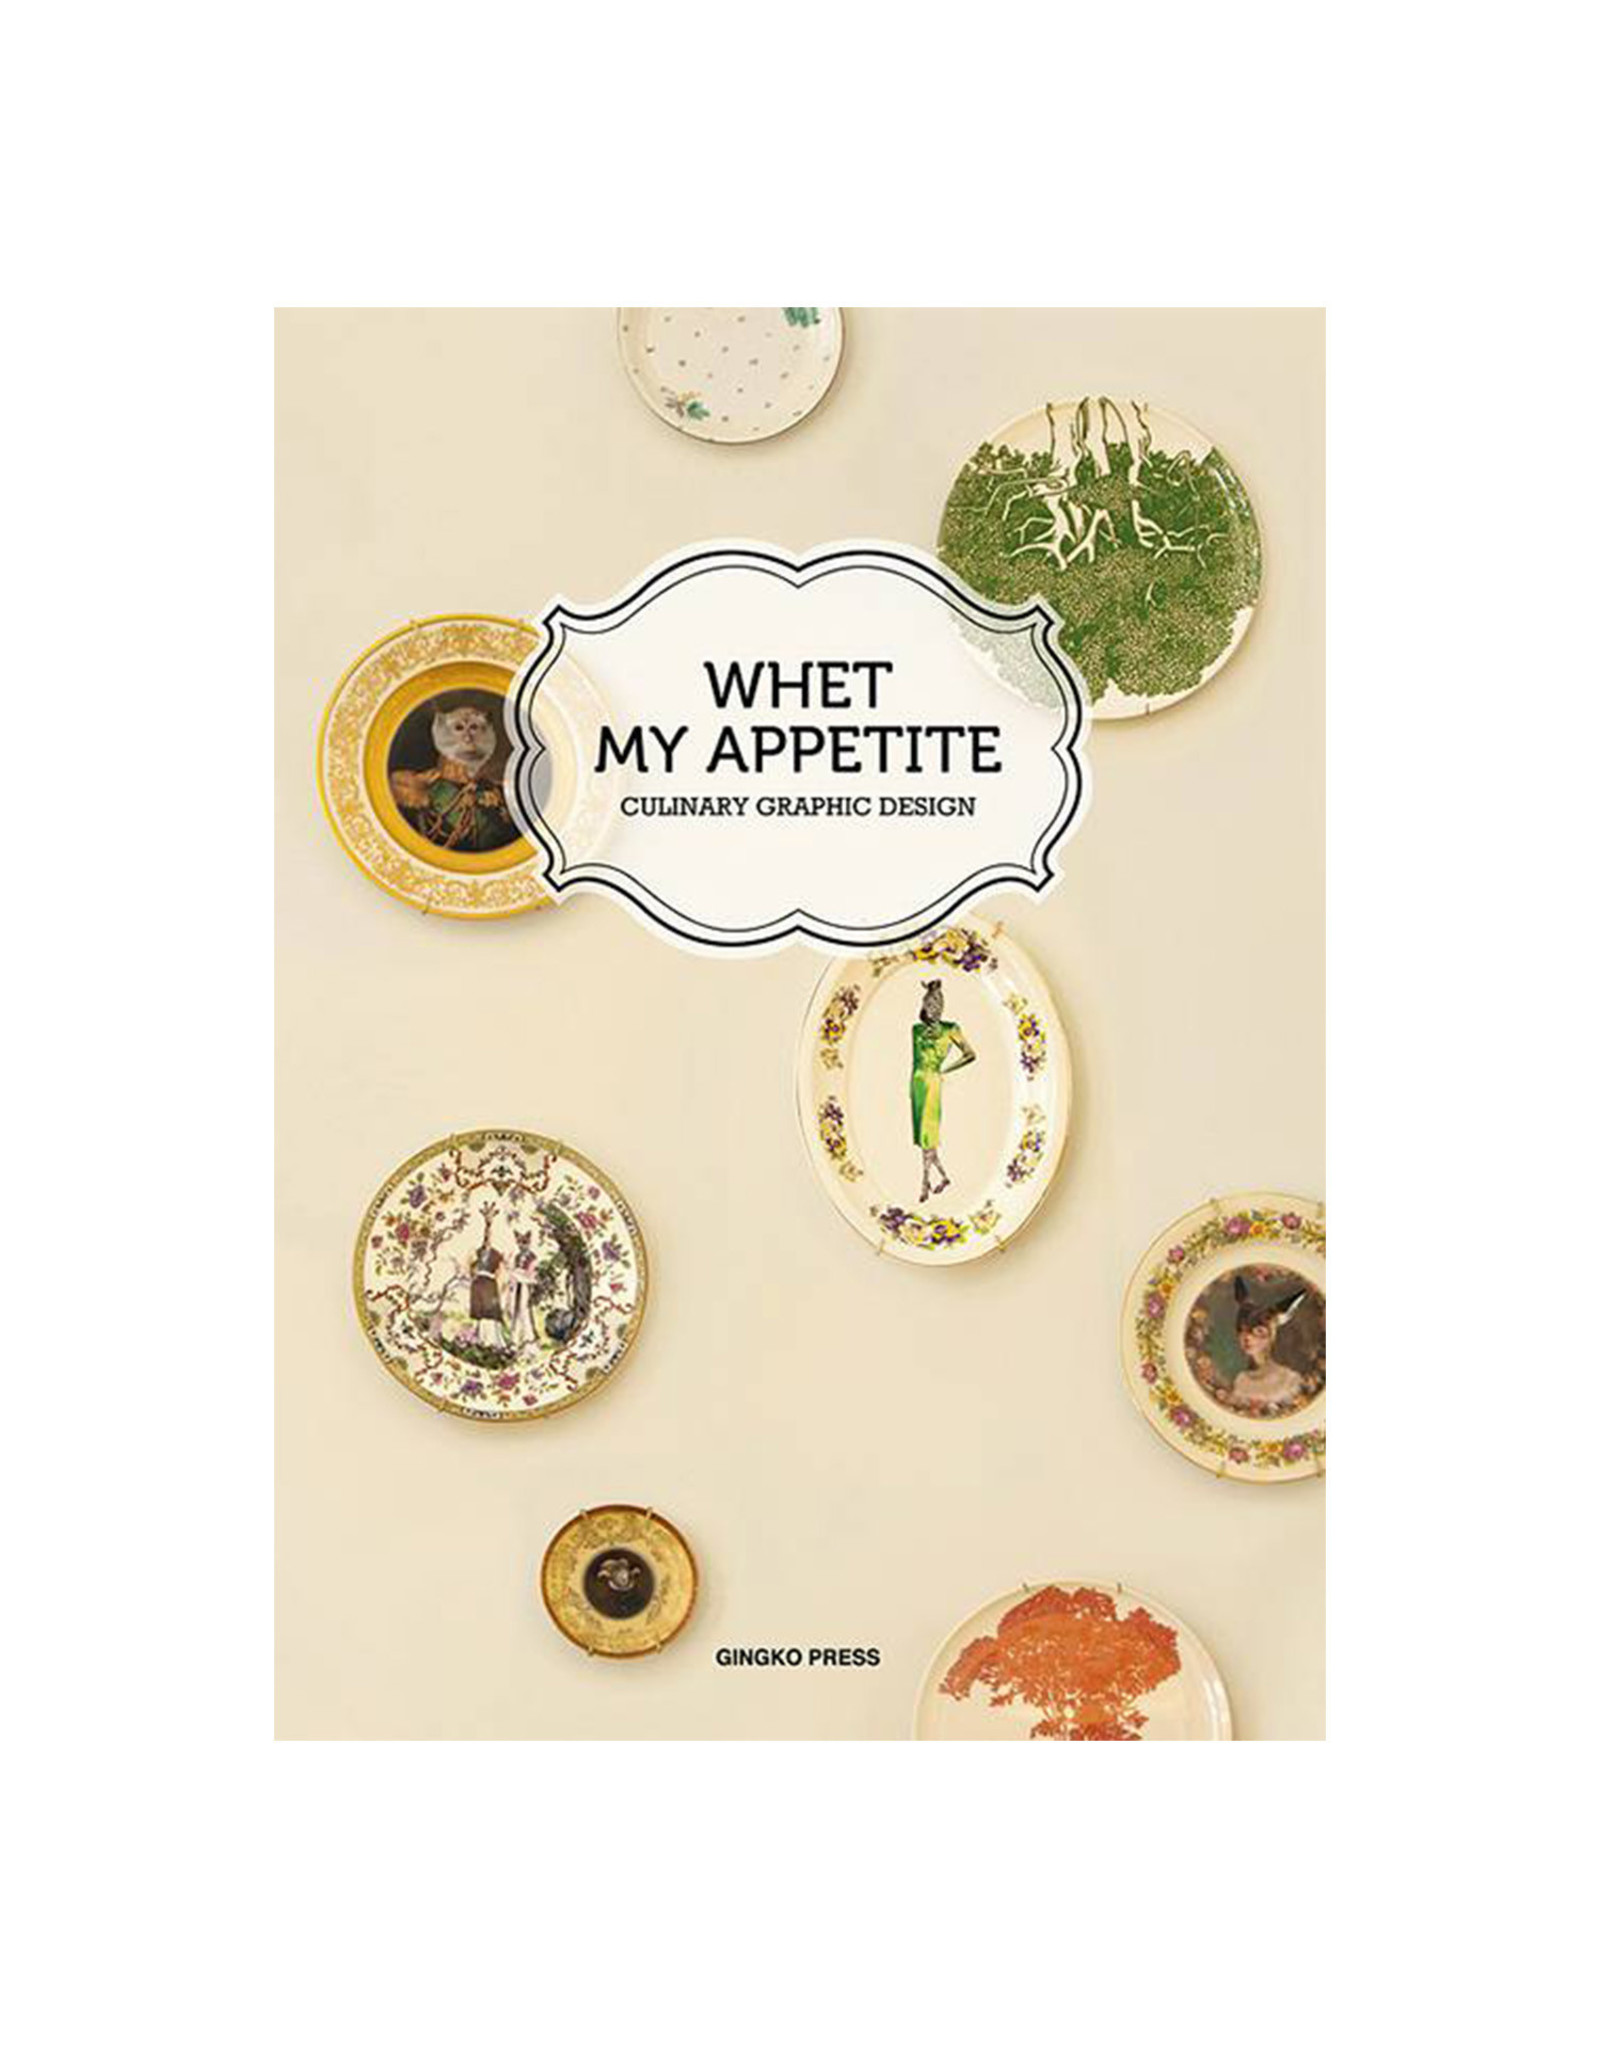 Whet My Appetite: Culinary Graphic Design